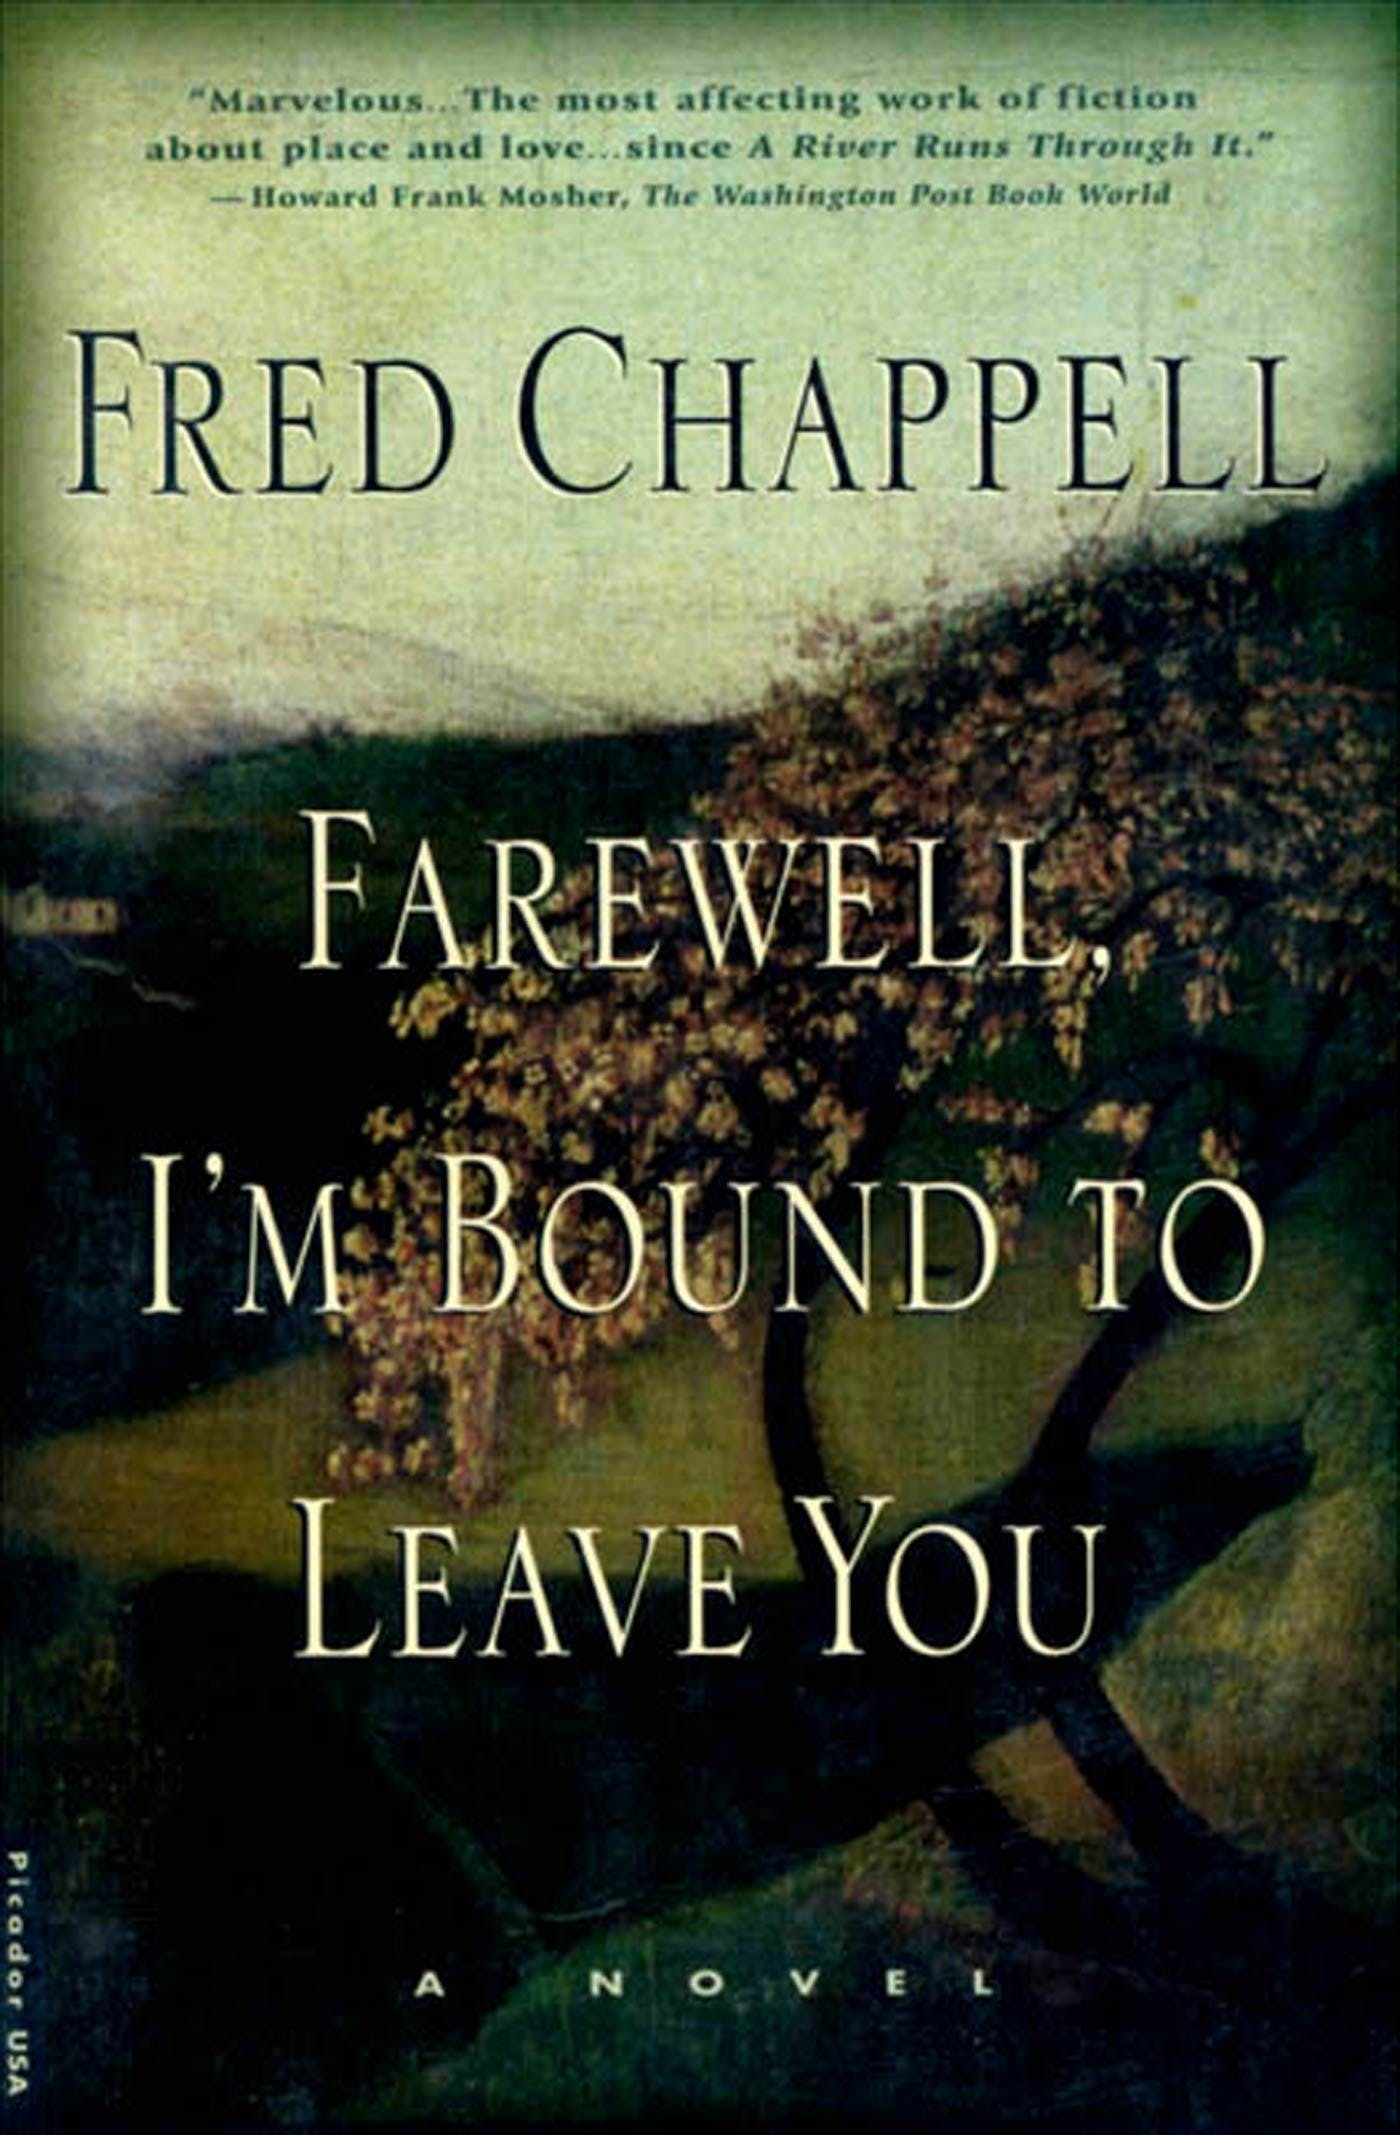 Image of Farewell, I'm Bound to Leave You